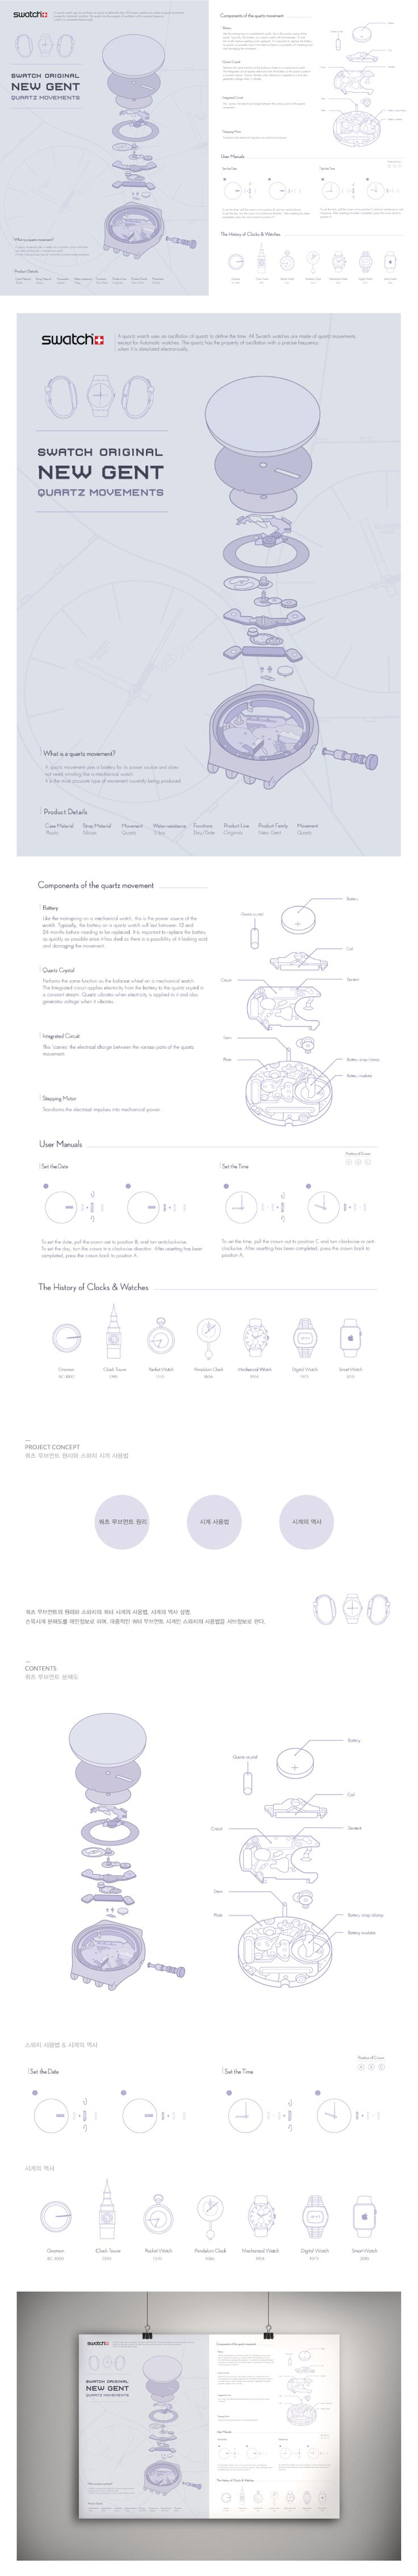 Kim Jaewon│ Information Design 2015│ Major in Digital Media Design │#hicoda…